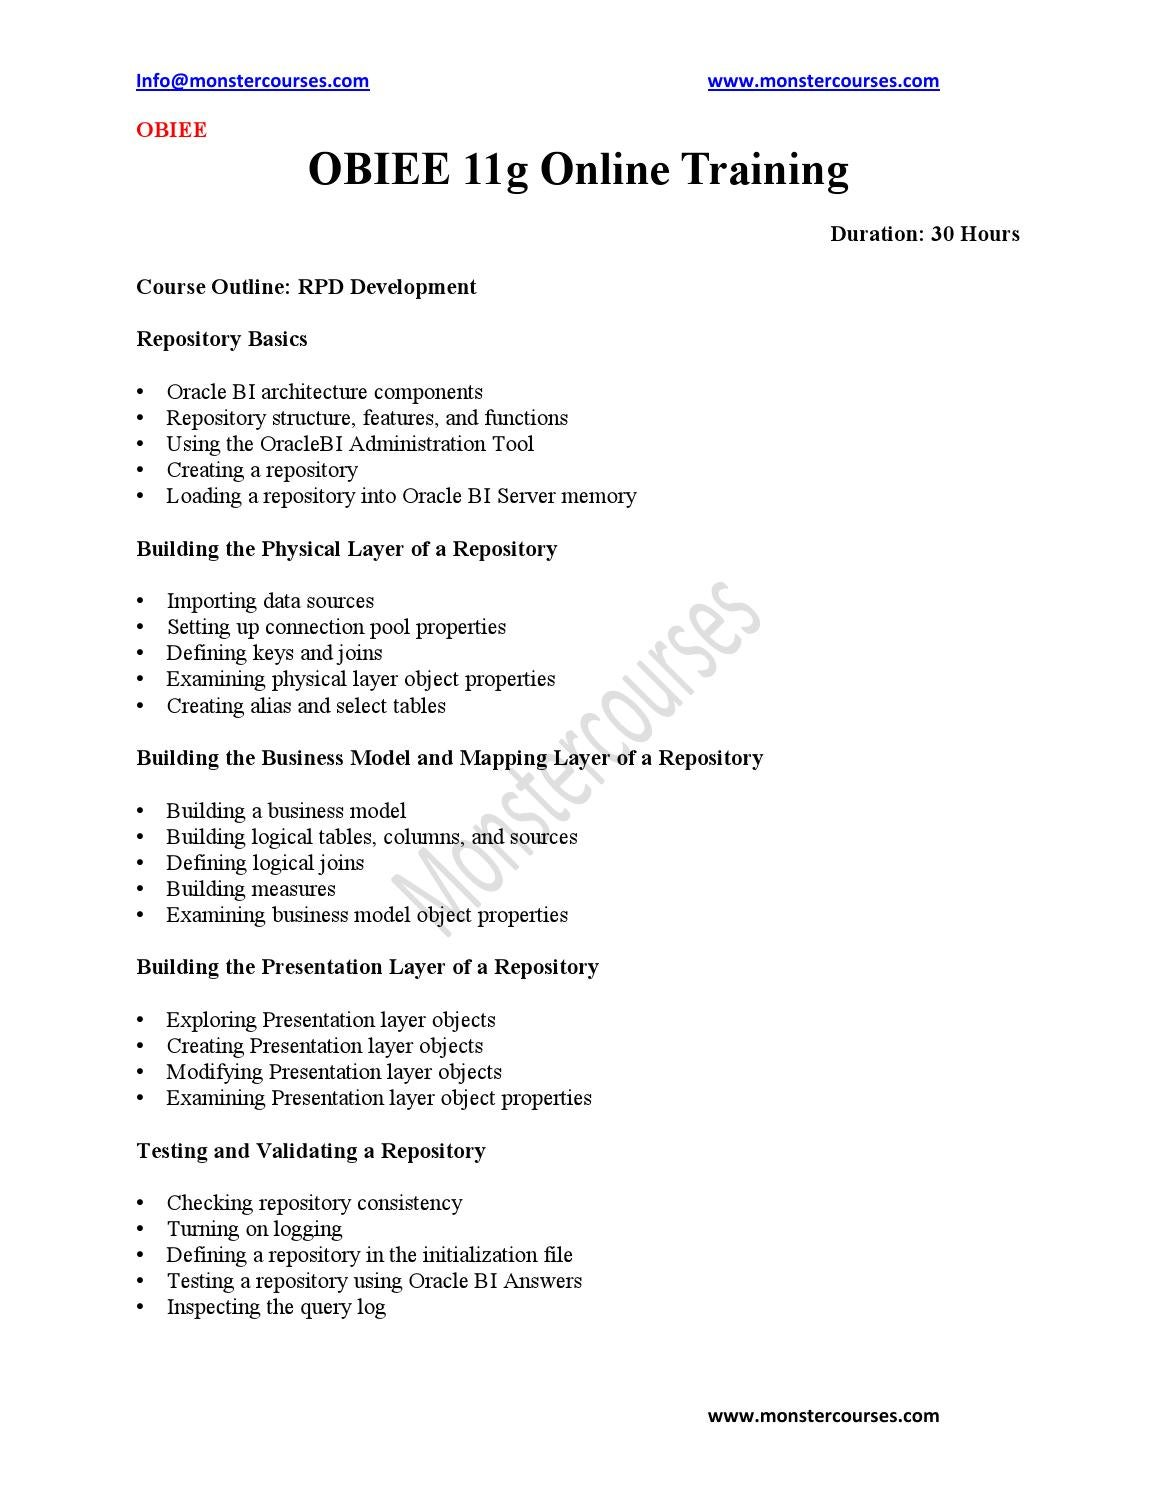 Obiee 11g Developer Resume Obiee Online Training By Monstercourses Issuu